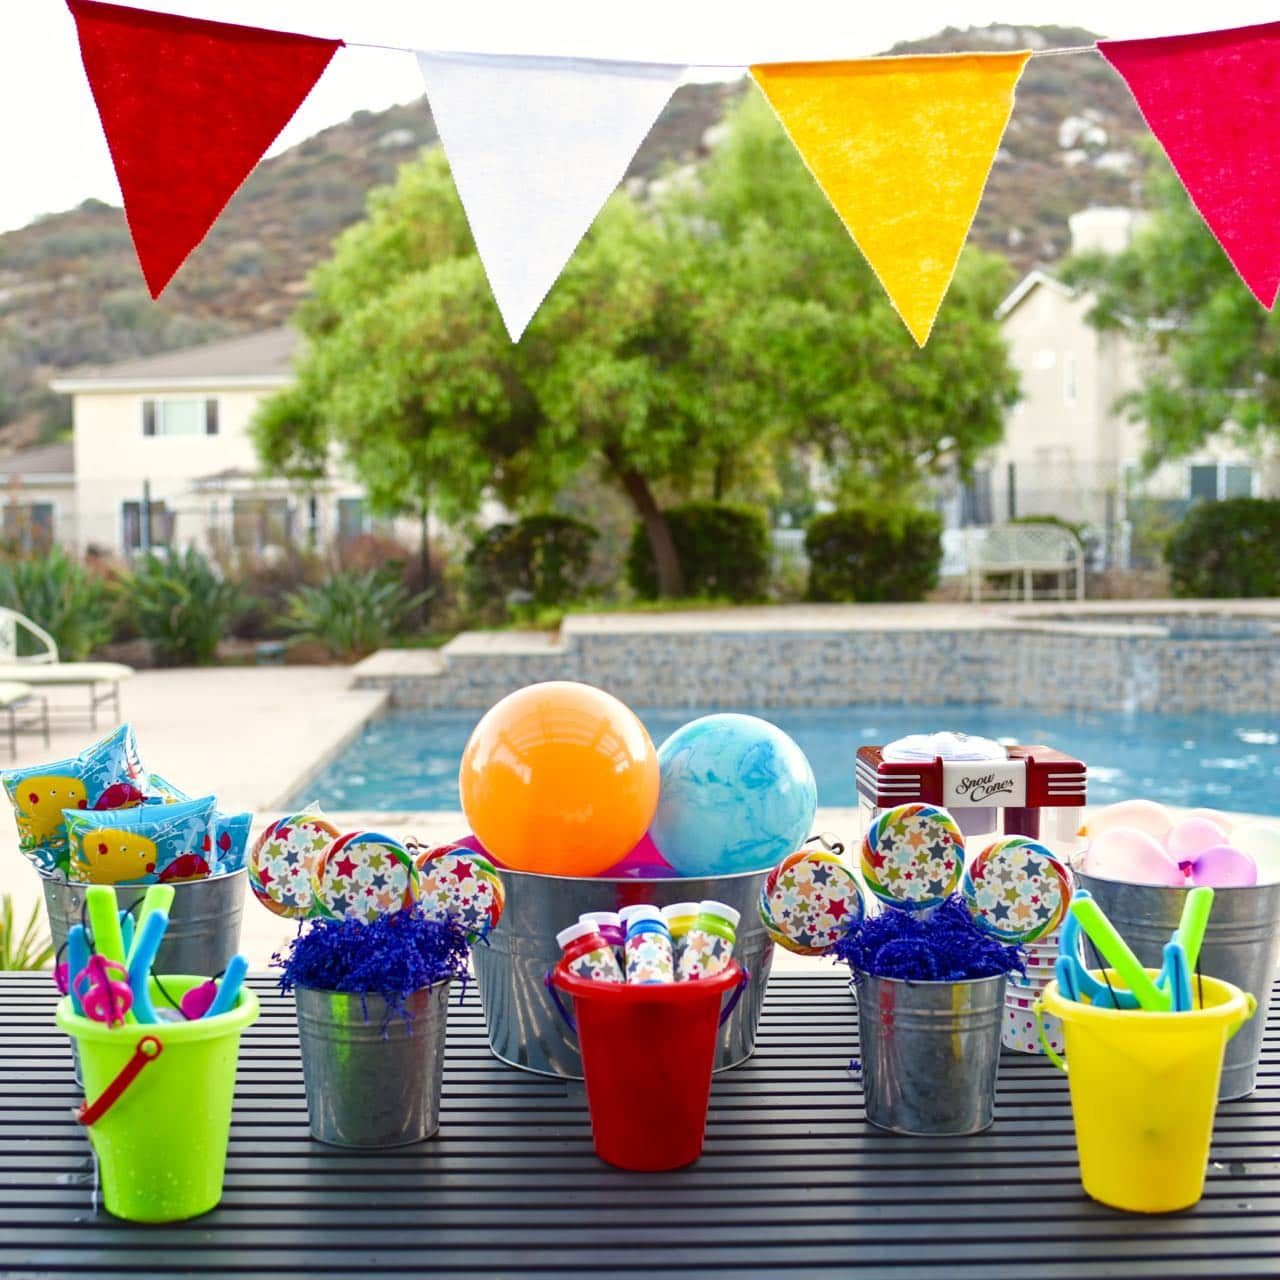 Summer is the best time to have a fun slumber party! These ideas and tips for hosting a Slumber Party this summer will make it fun and create lasting memories for you and the kids! What says summer more than a fabulous Luau Party?